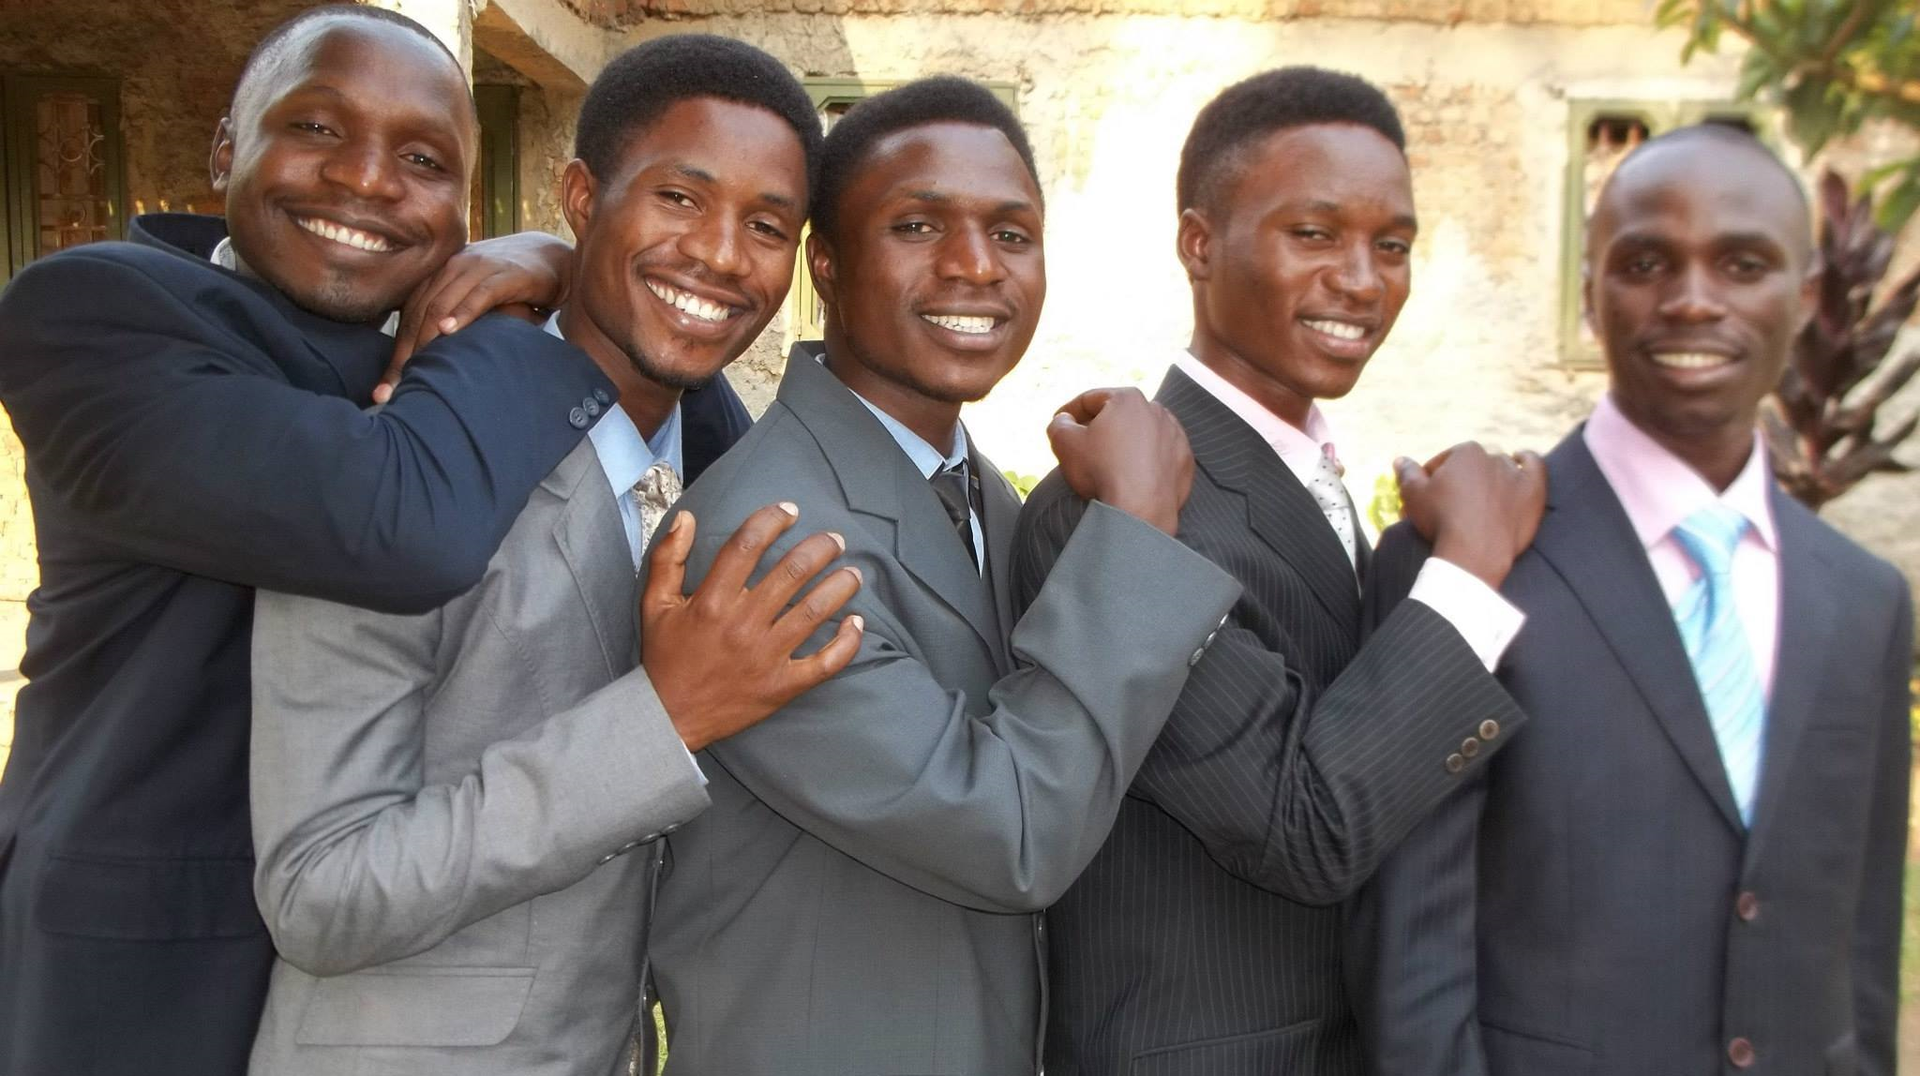 Cinco hermanos ugandeses: (L - R) Idine Membere, Edwin Bwambale, Godwin Tusime, Harrison Thembo y Cleave Masereka.